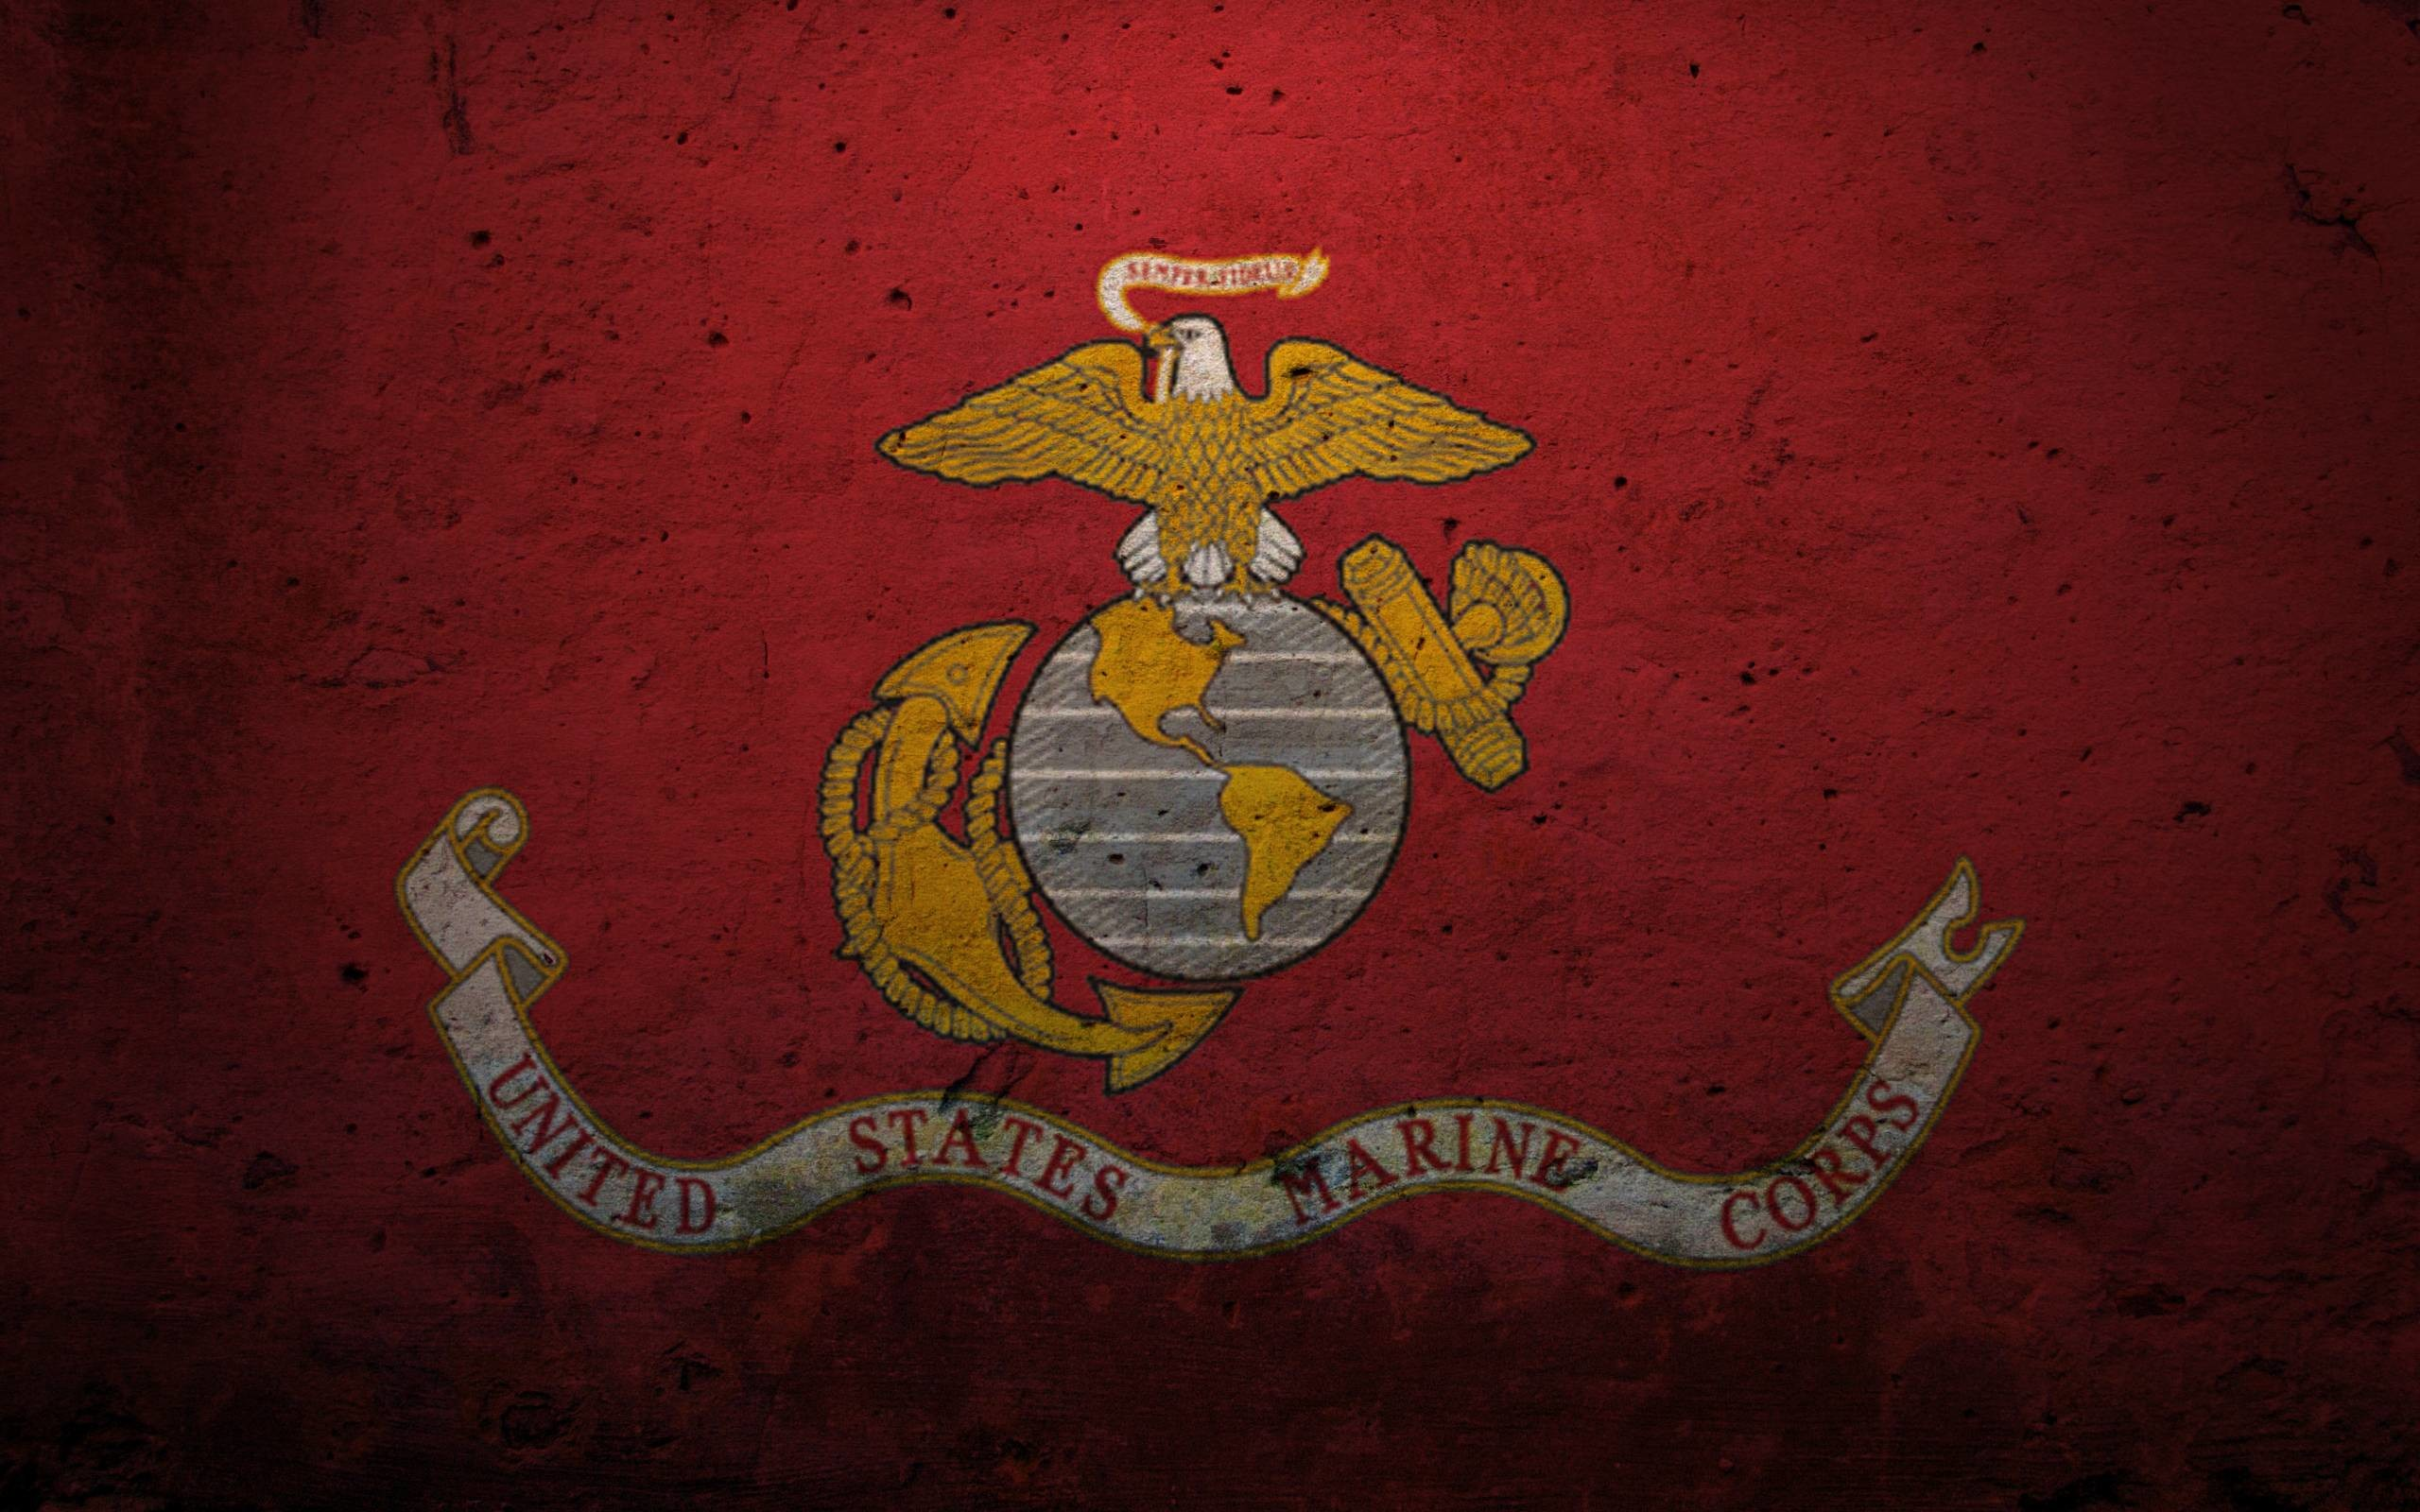 2560x1600 USA Marine Corps Wallpapers HD 1600×1200 - High Definition .